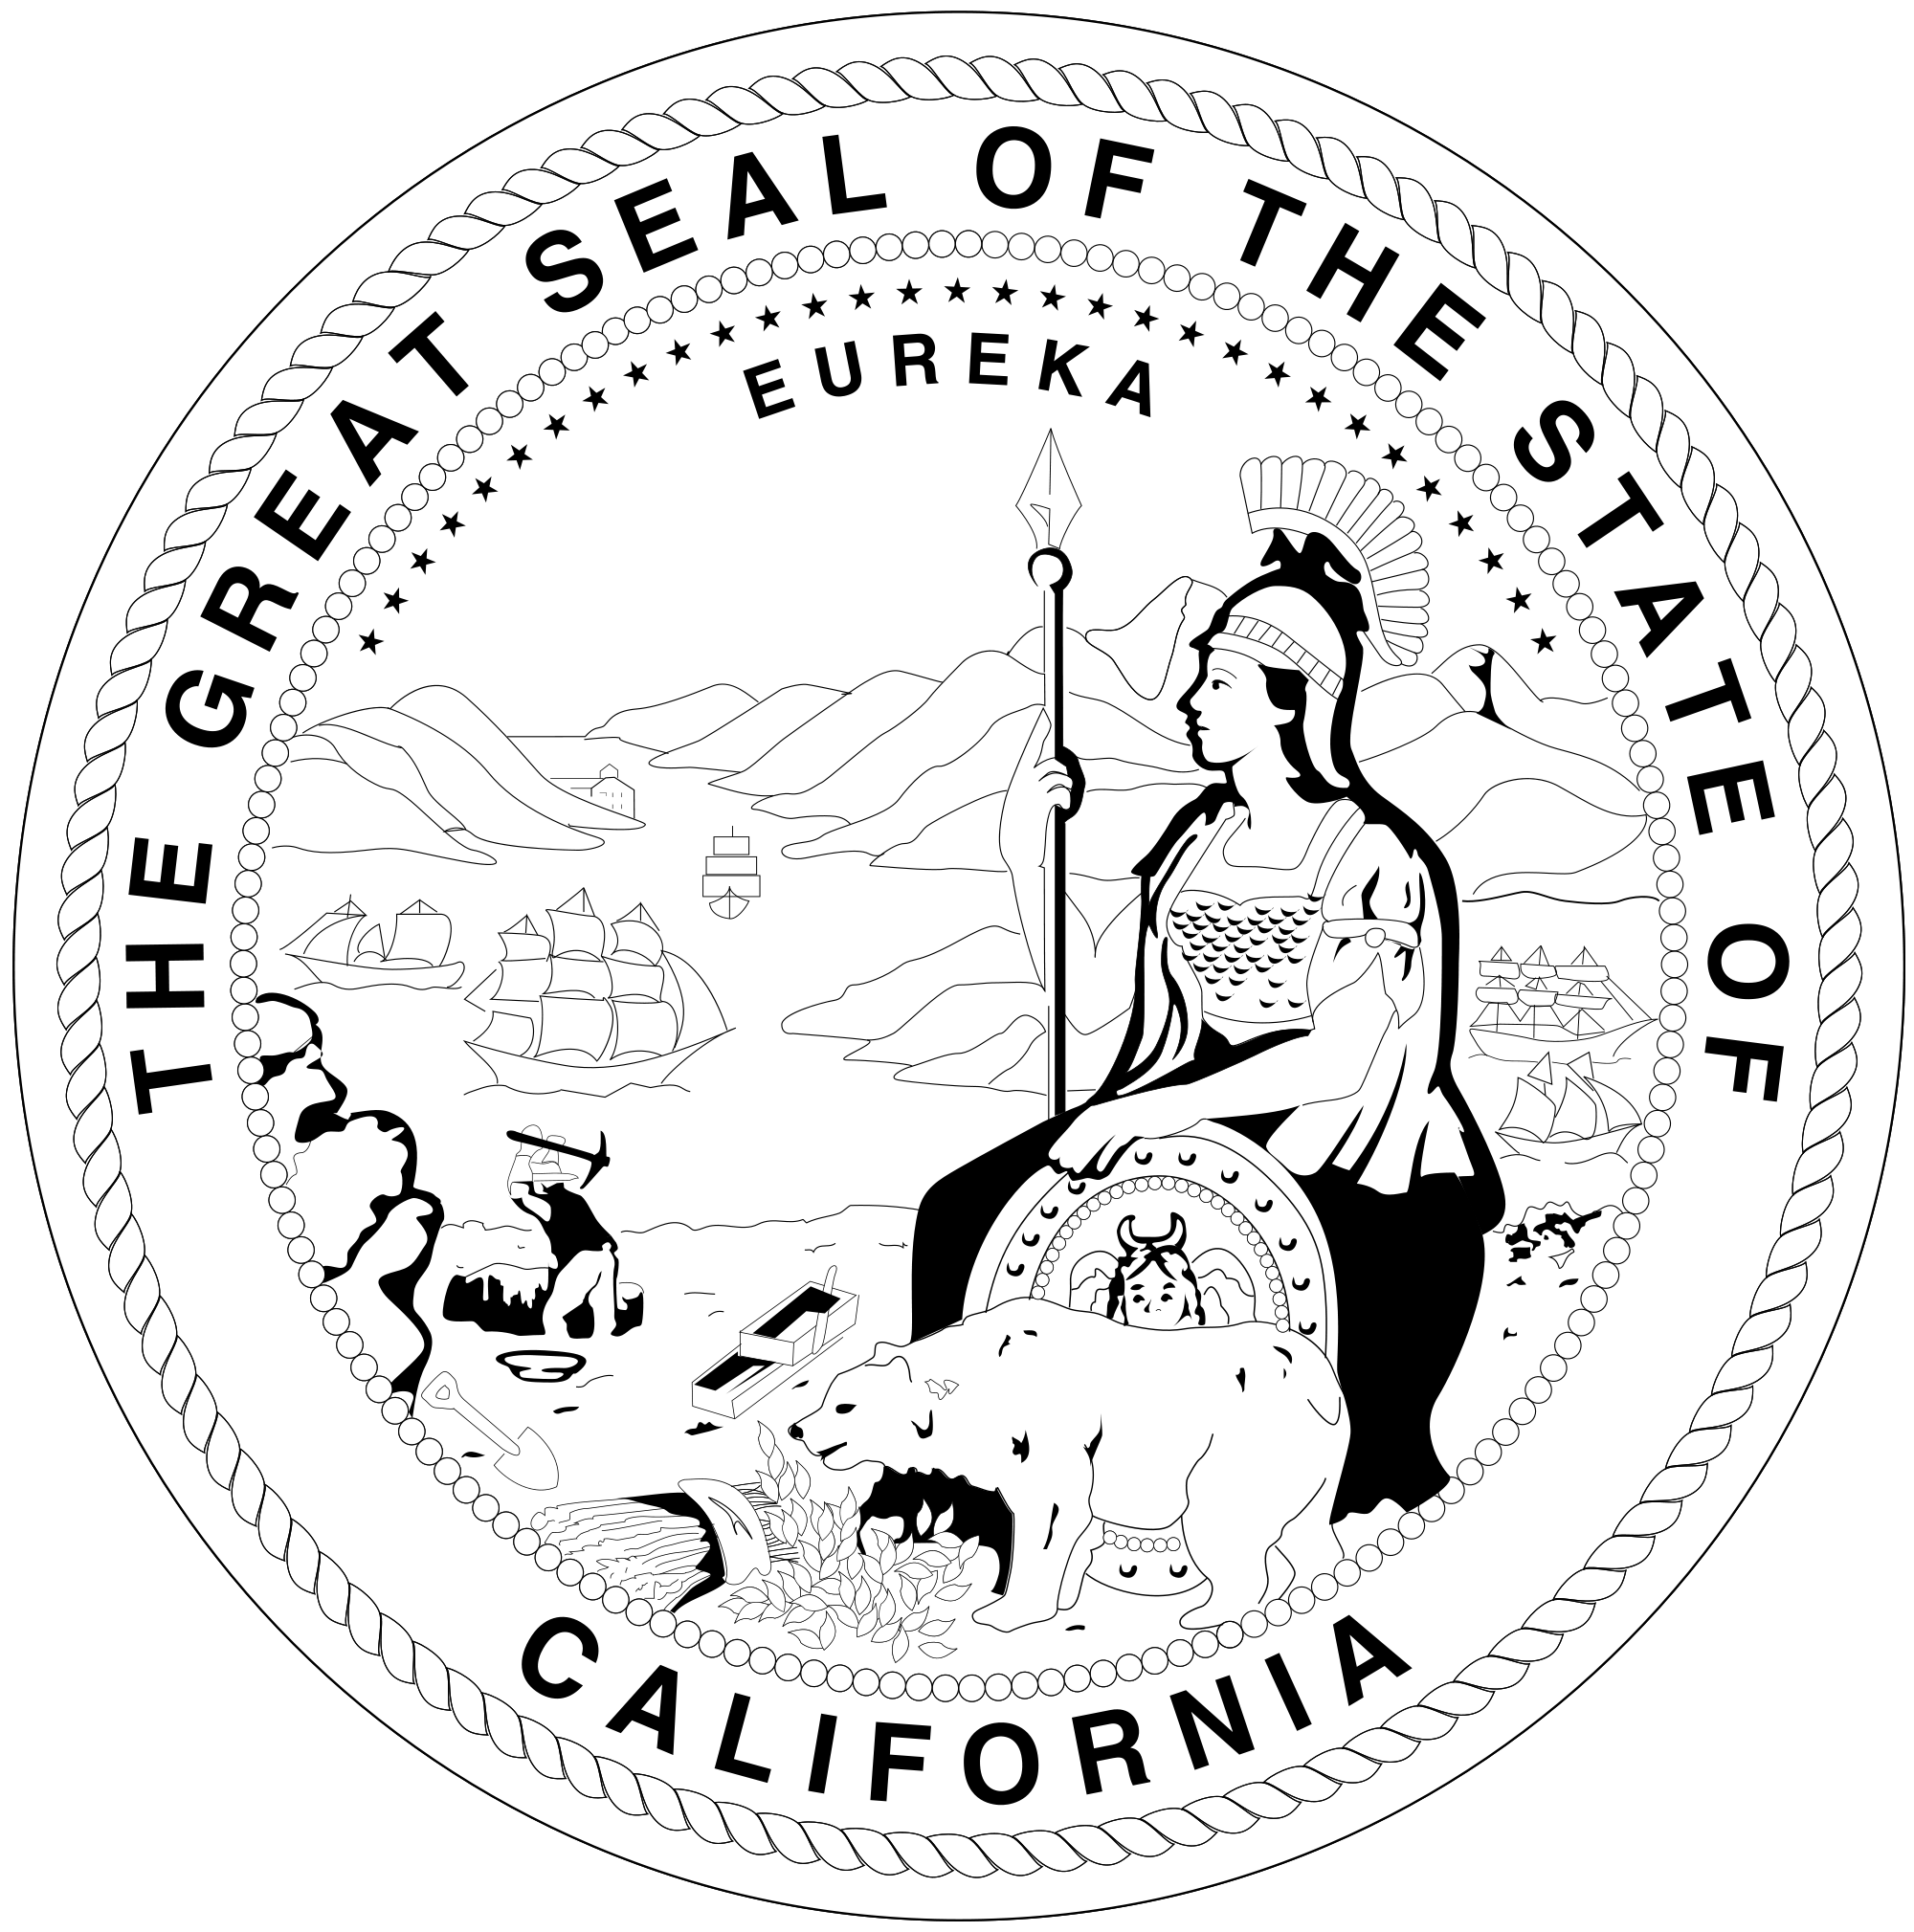 California svg black and white. File seal of b